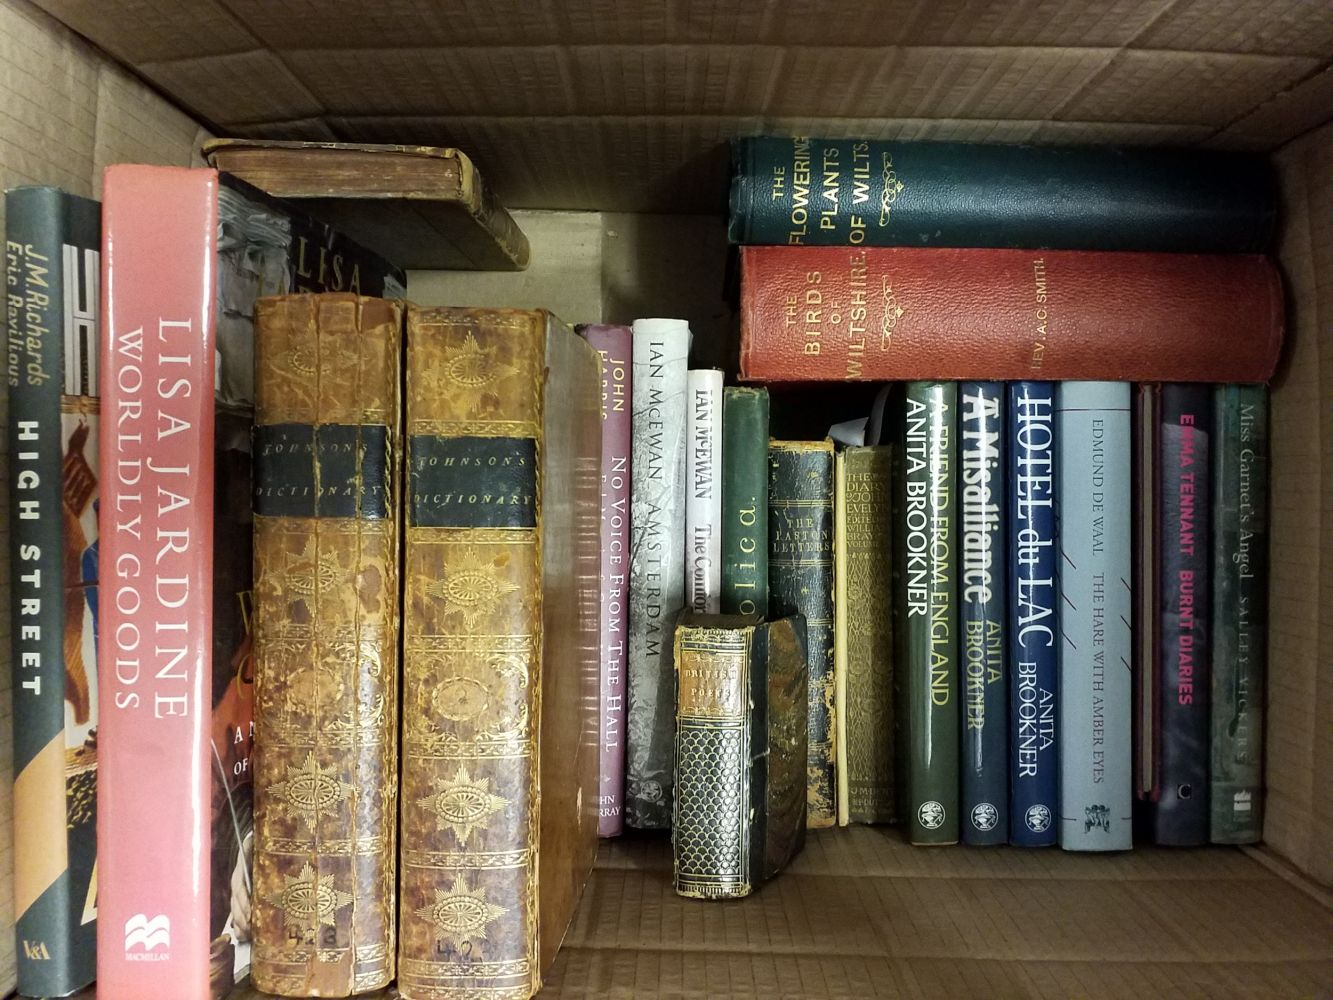 Miscellaneous Literature. A collection of 18t-century to modern literature & reference